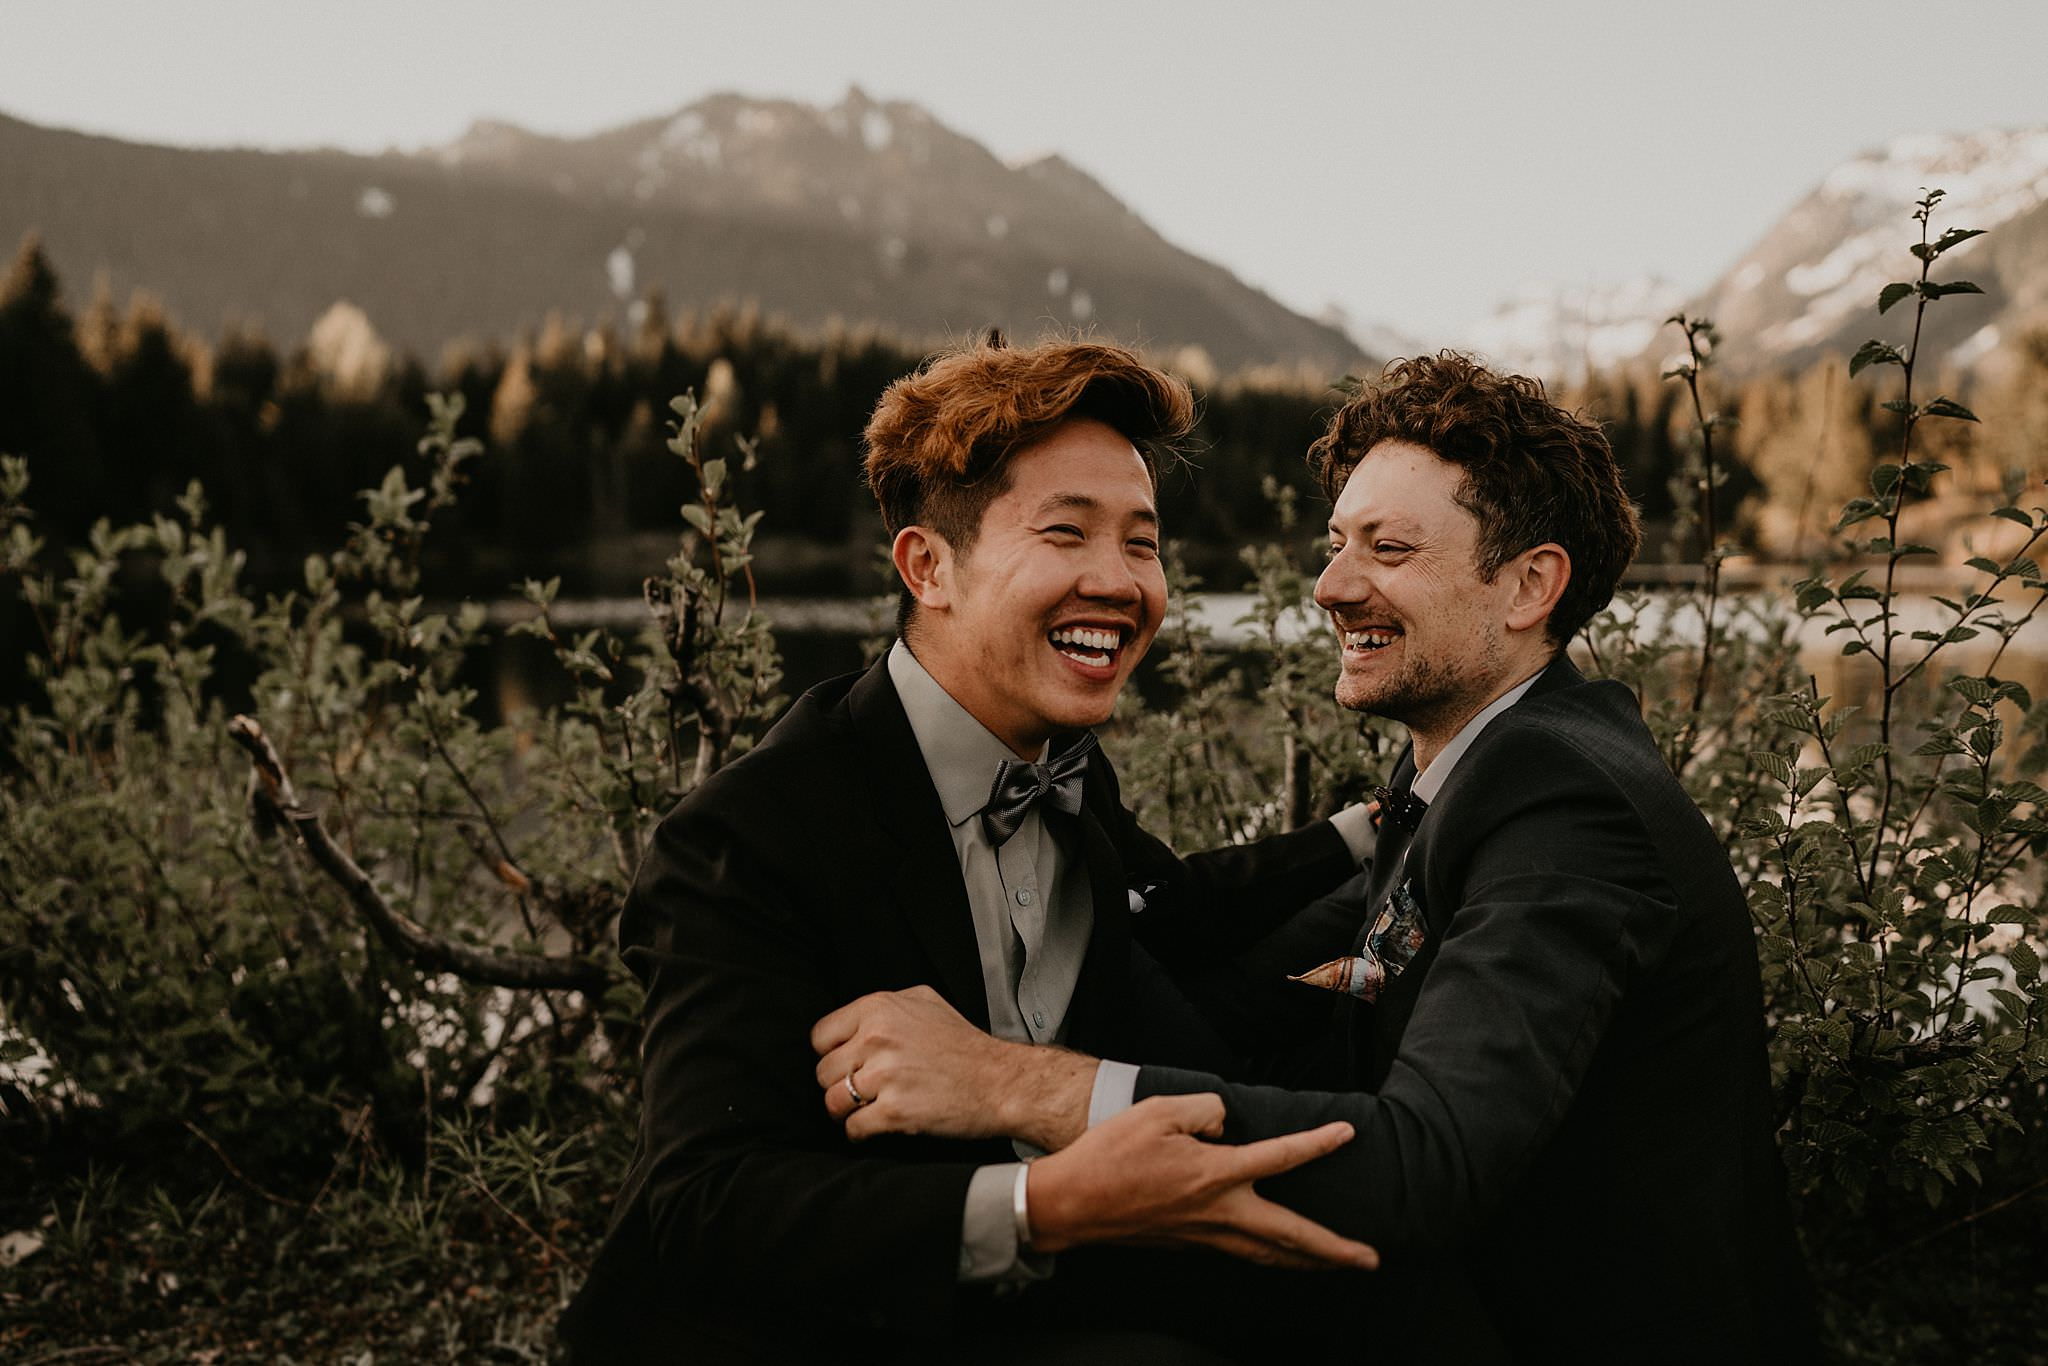 Gold-Creek-Pond-Elopement-Pacific-Northwest-Washington-Mountain-LGBT-Gay-Wedding_0063.jpg